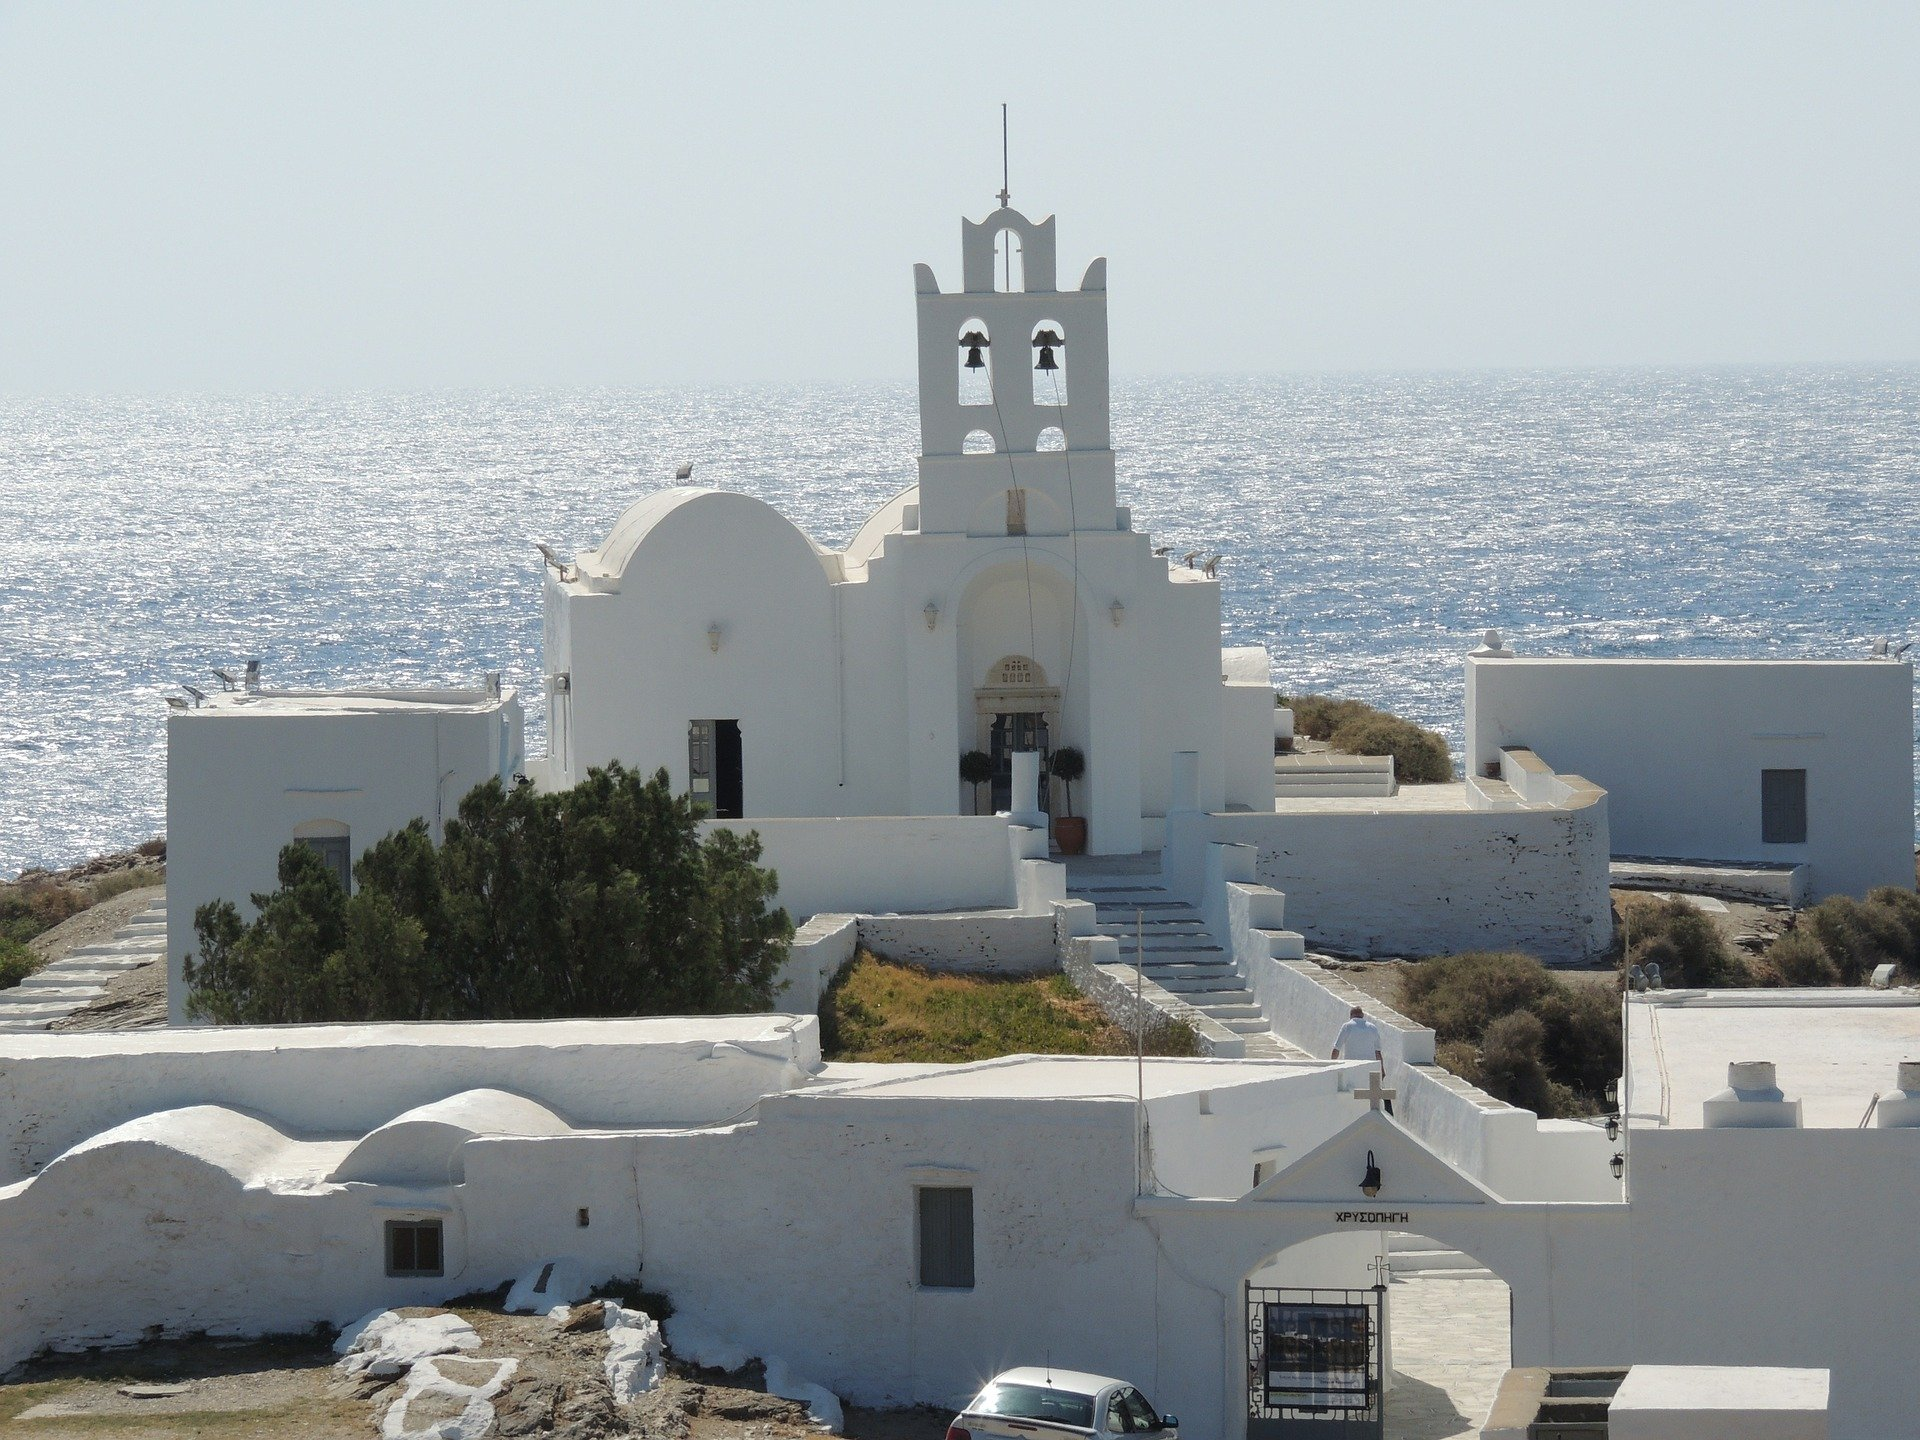 Sifnos Island - Sifnos is Tom Hanks' favorite - Chrysopigi chapel